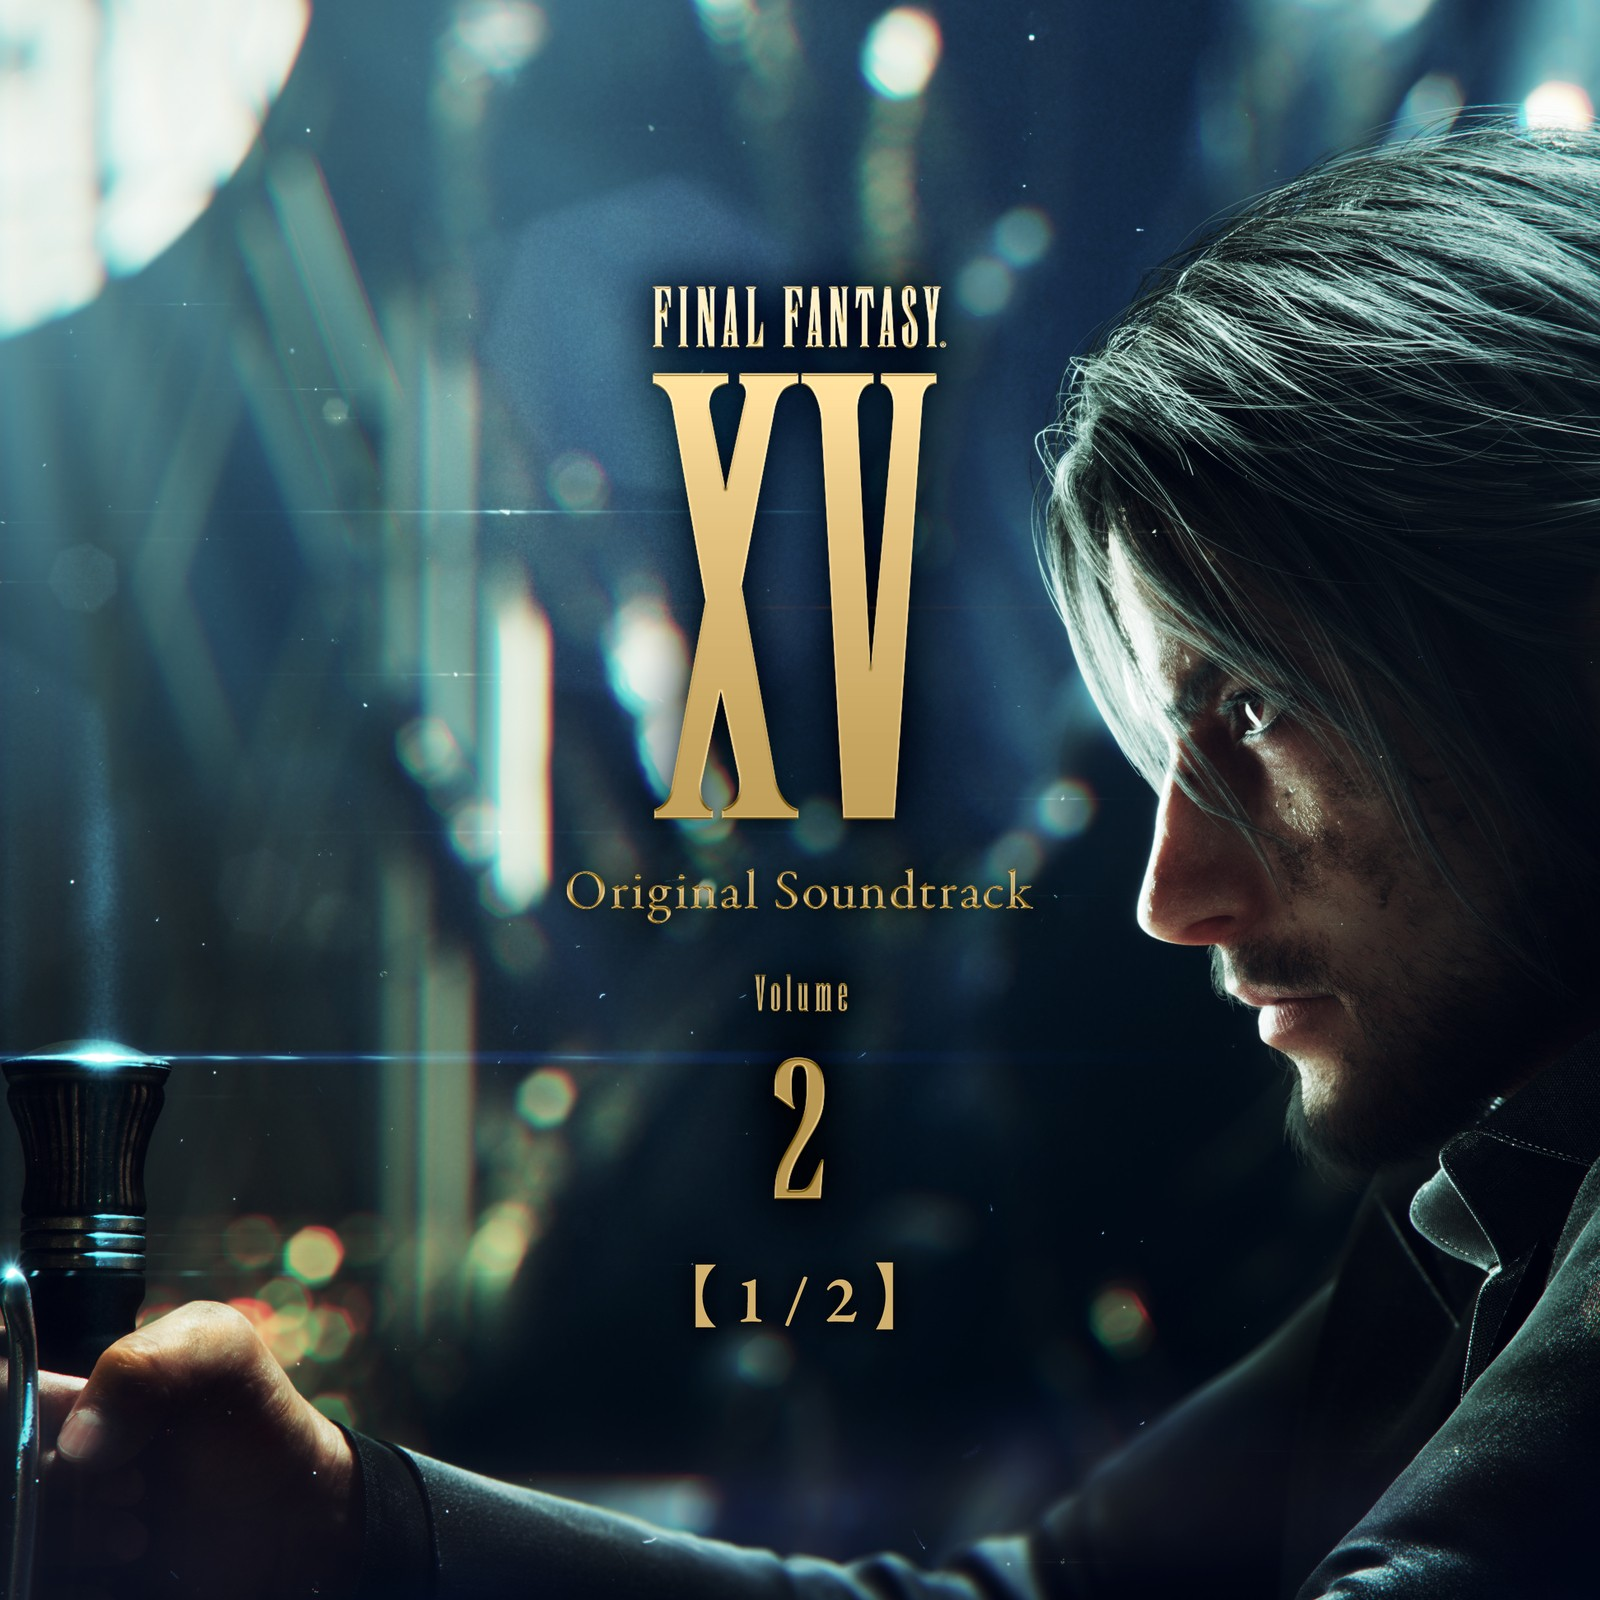 下村陽子 (Yoko Shimomura) – FINAL FANTASY XV Original Soundtrack Volume 2 [MP3 320 / CD] [2018.03.21]